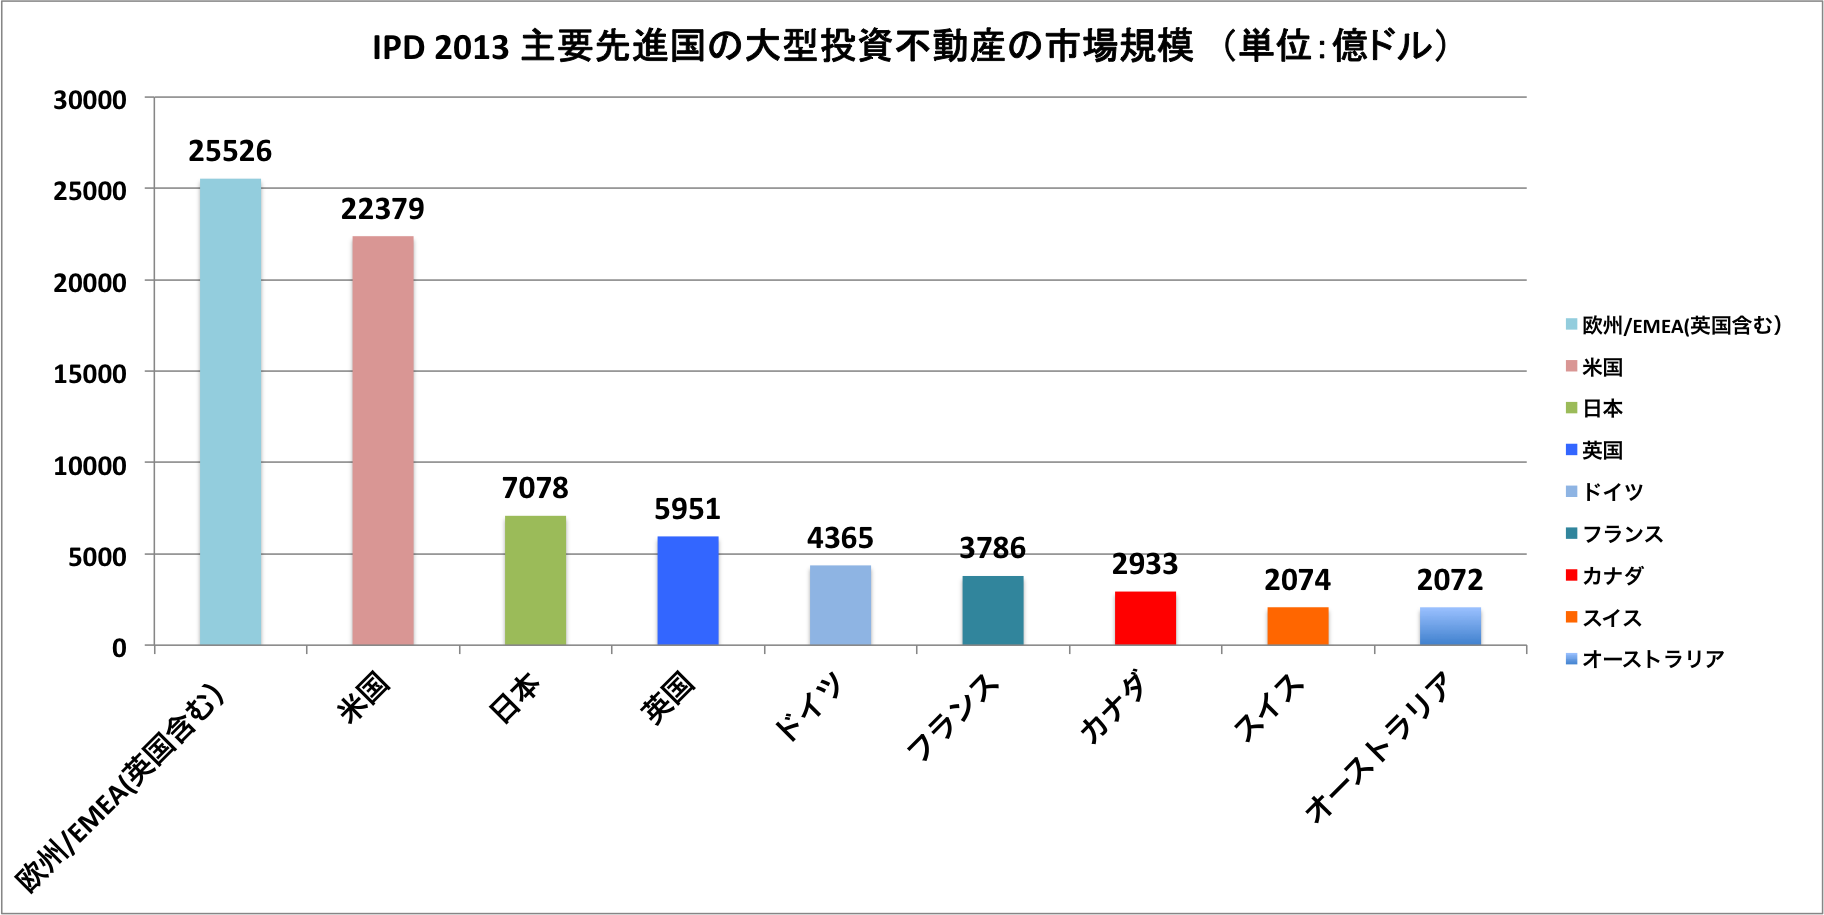 IPD market size 2013